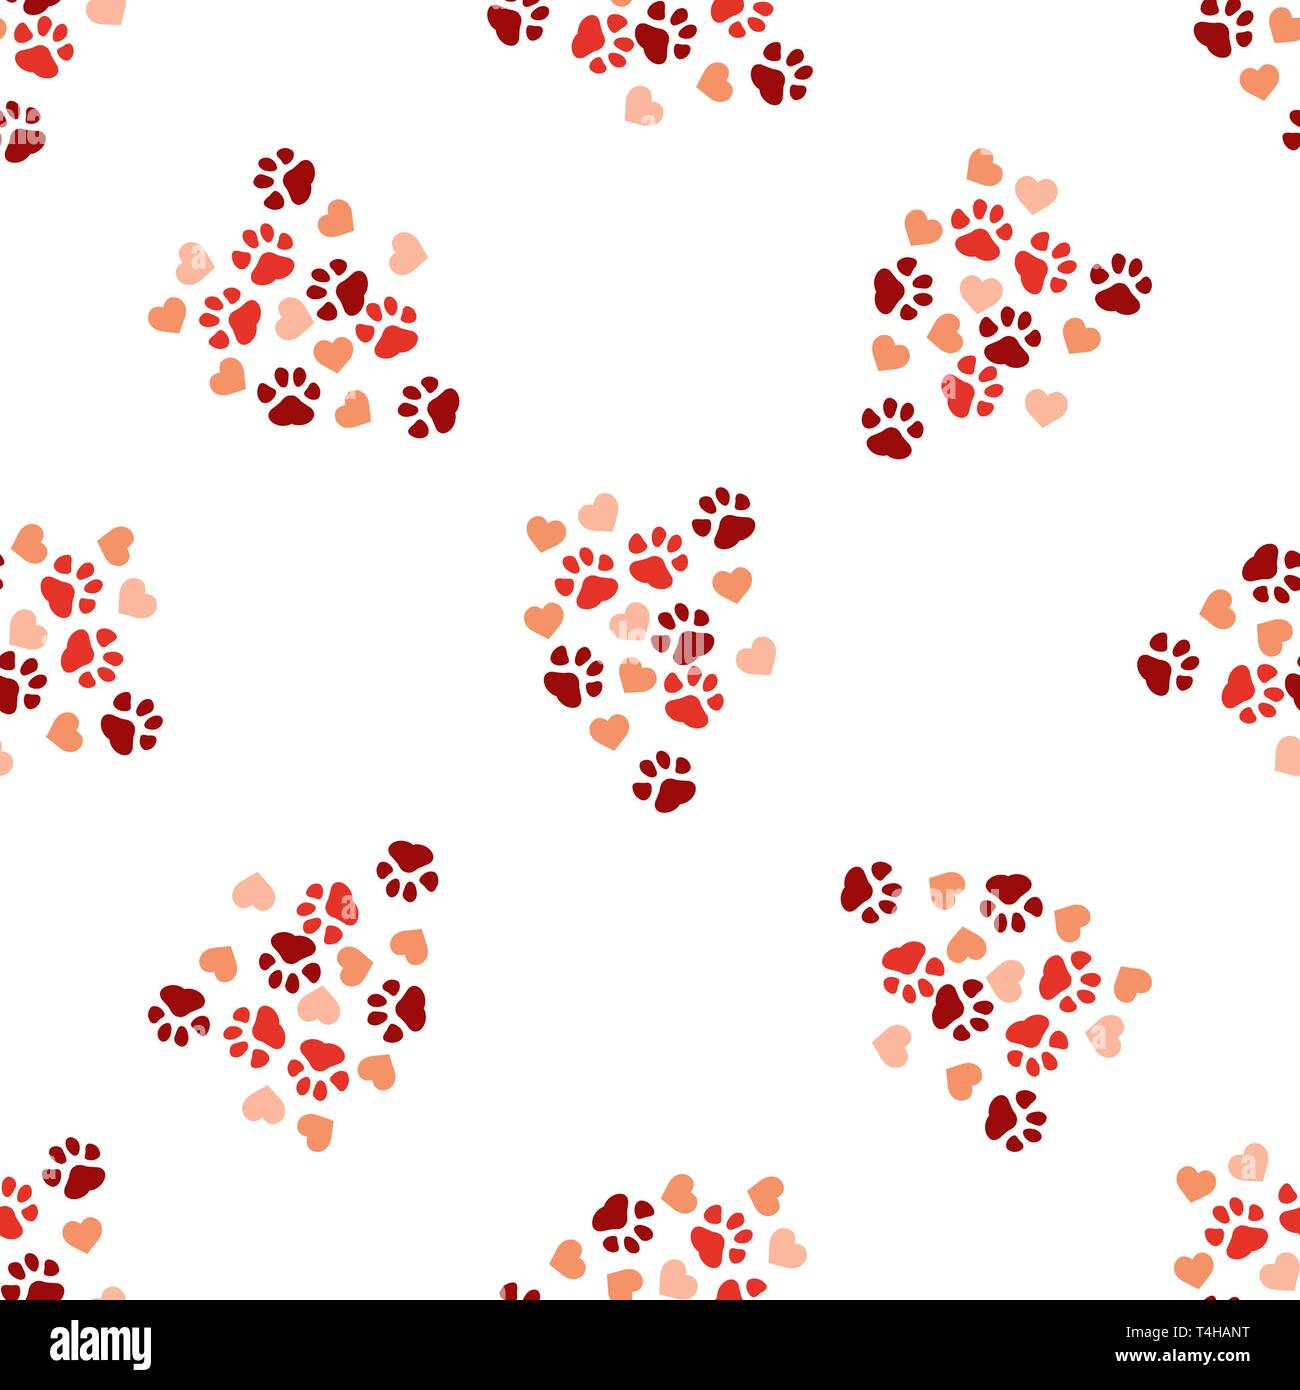 77bd1460ce2a Animal paw print seamless pattern background. Business flat vector  illustration. Dog or cat pawprint sign symbol pattern.